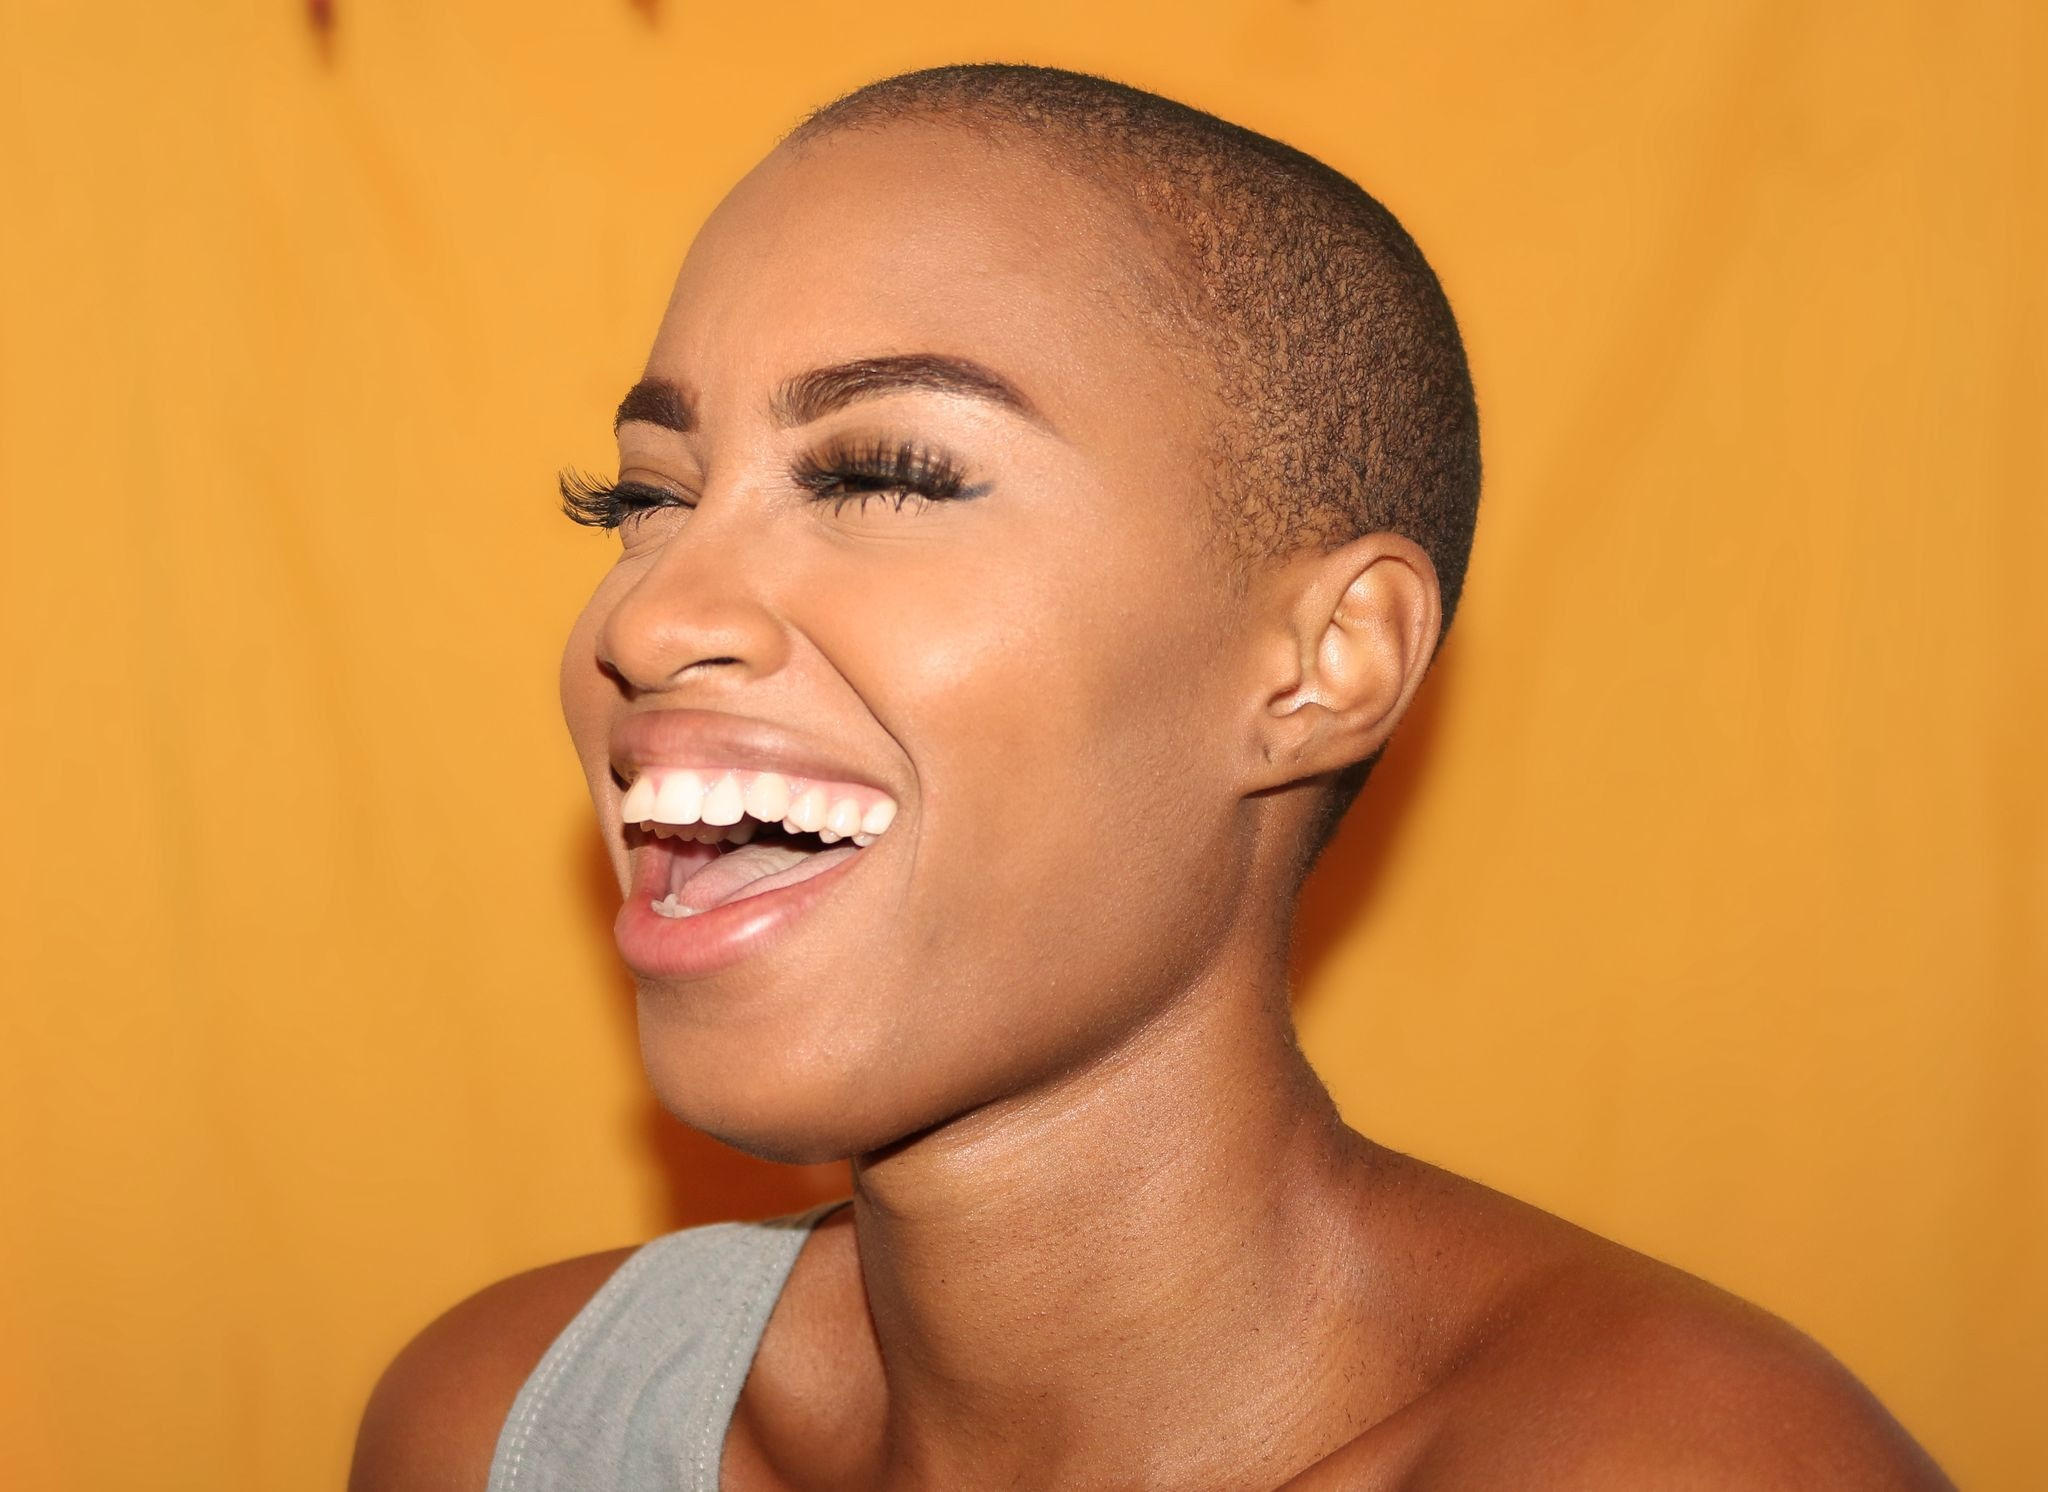 5 Self-Care Activities You Can Do Now - Laugh by Dr. Tiffanie L. Williams